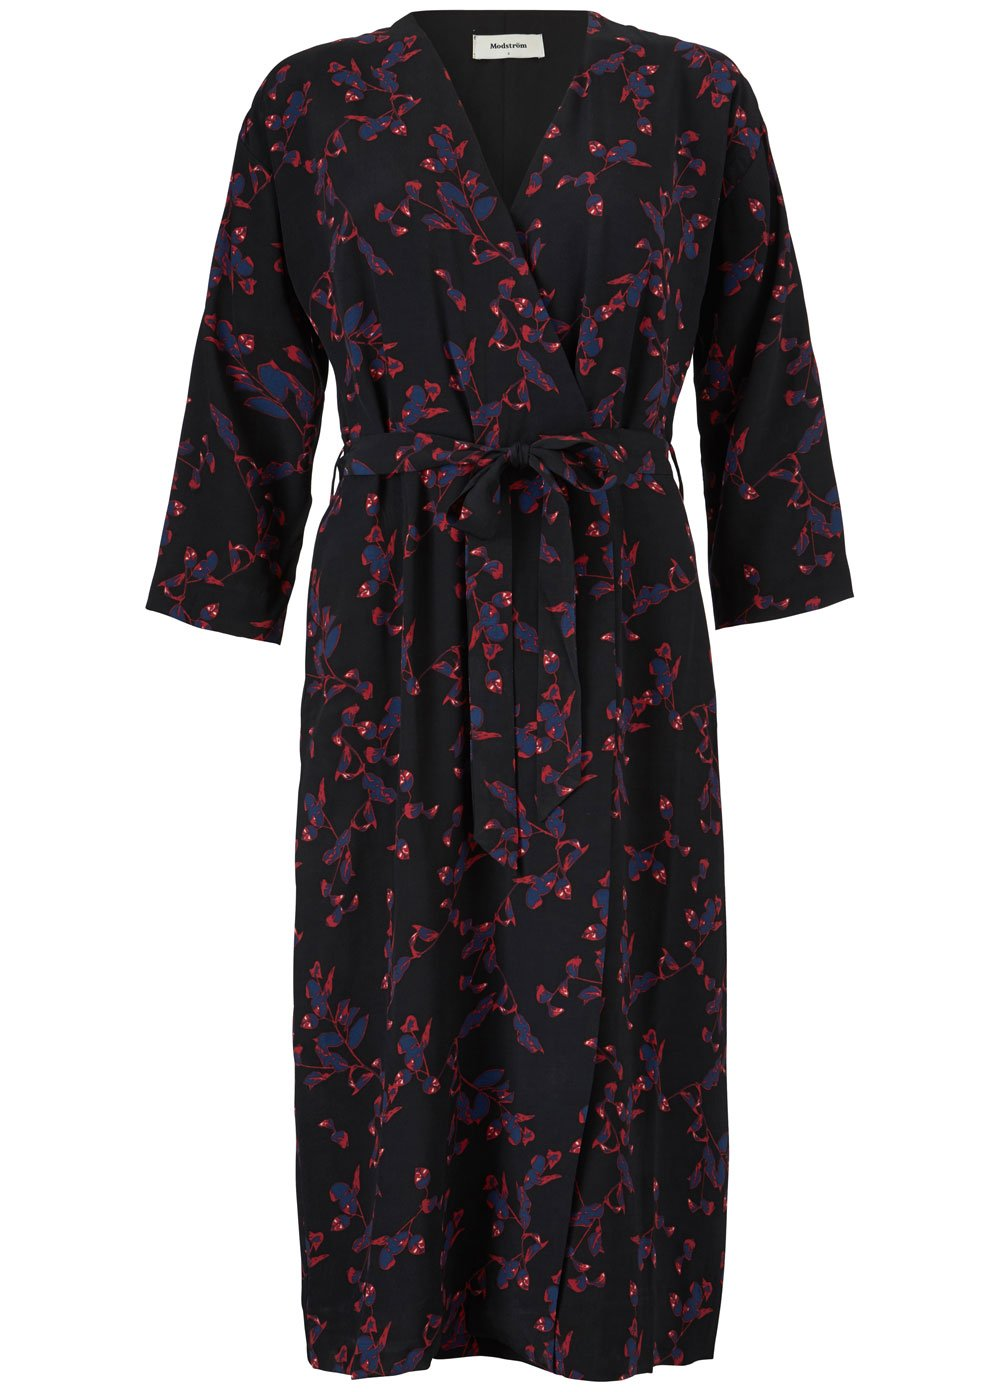 Jesla Print Dress - Folia